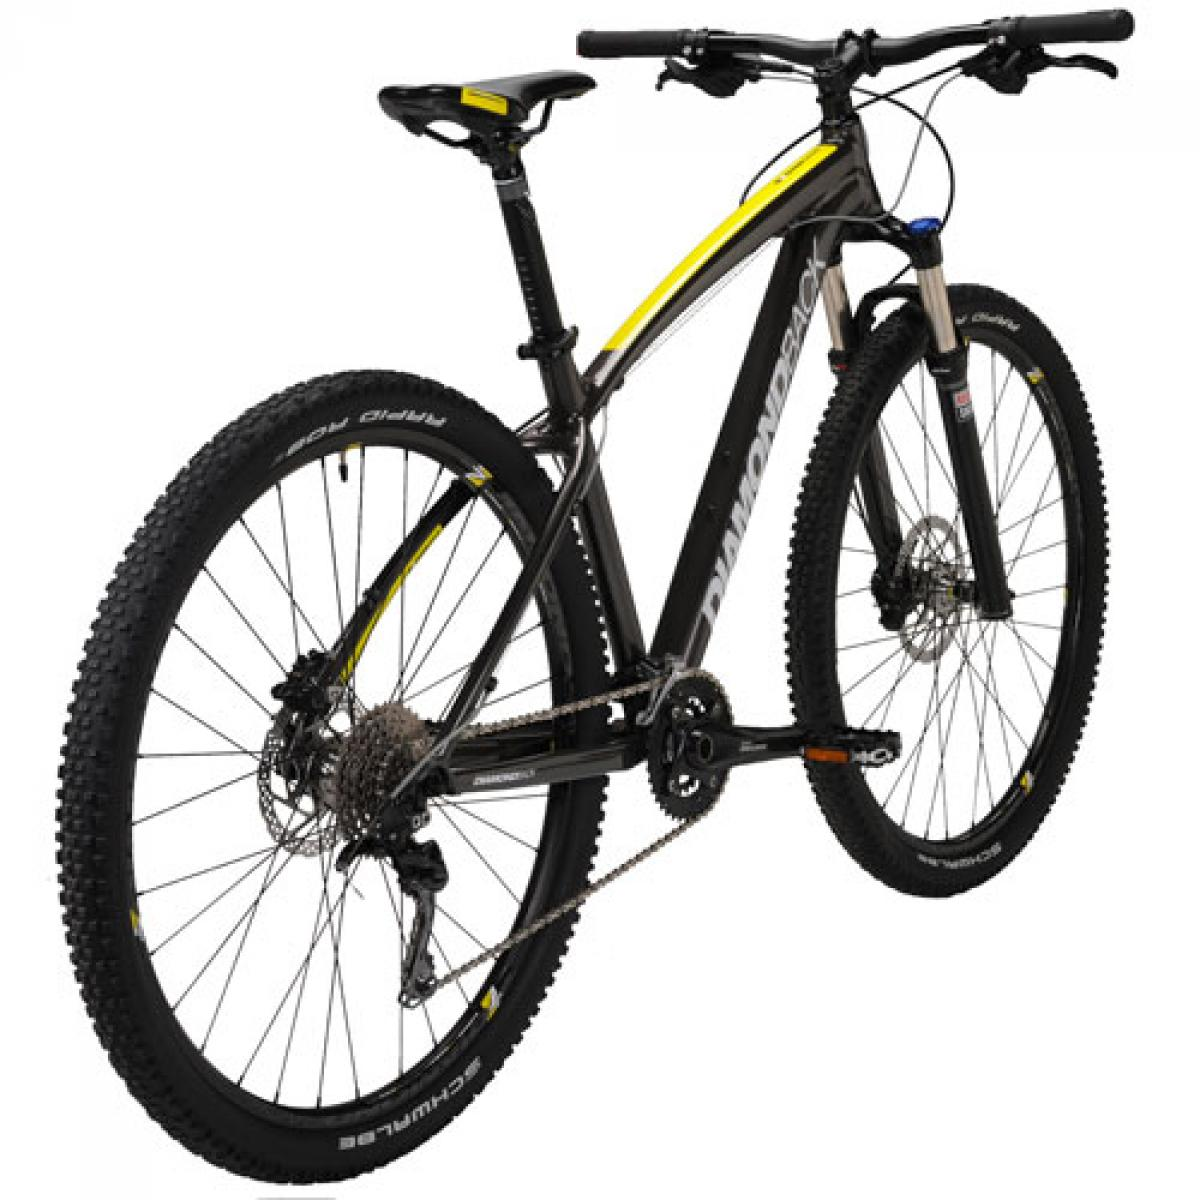 Price: $$$ Rating: W e have the Nashbar AT2 Mountain bike on the list, which amplifies your adventurous spirit, whether you are hitting a path, paved road, or rough trail.